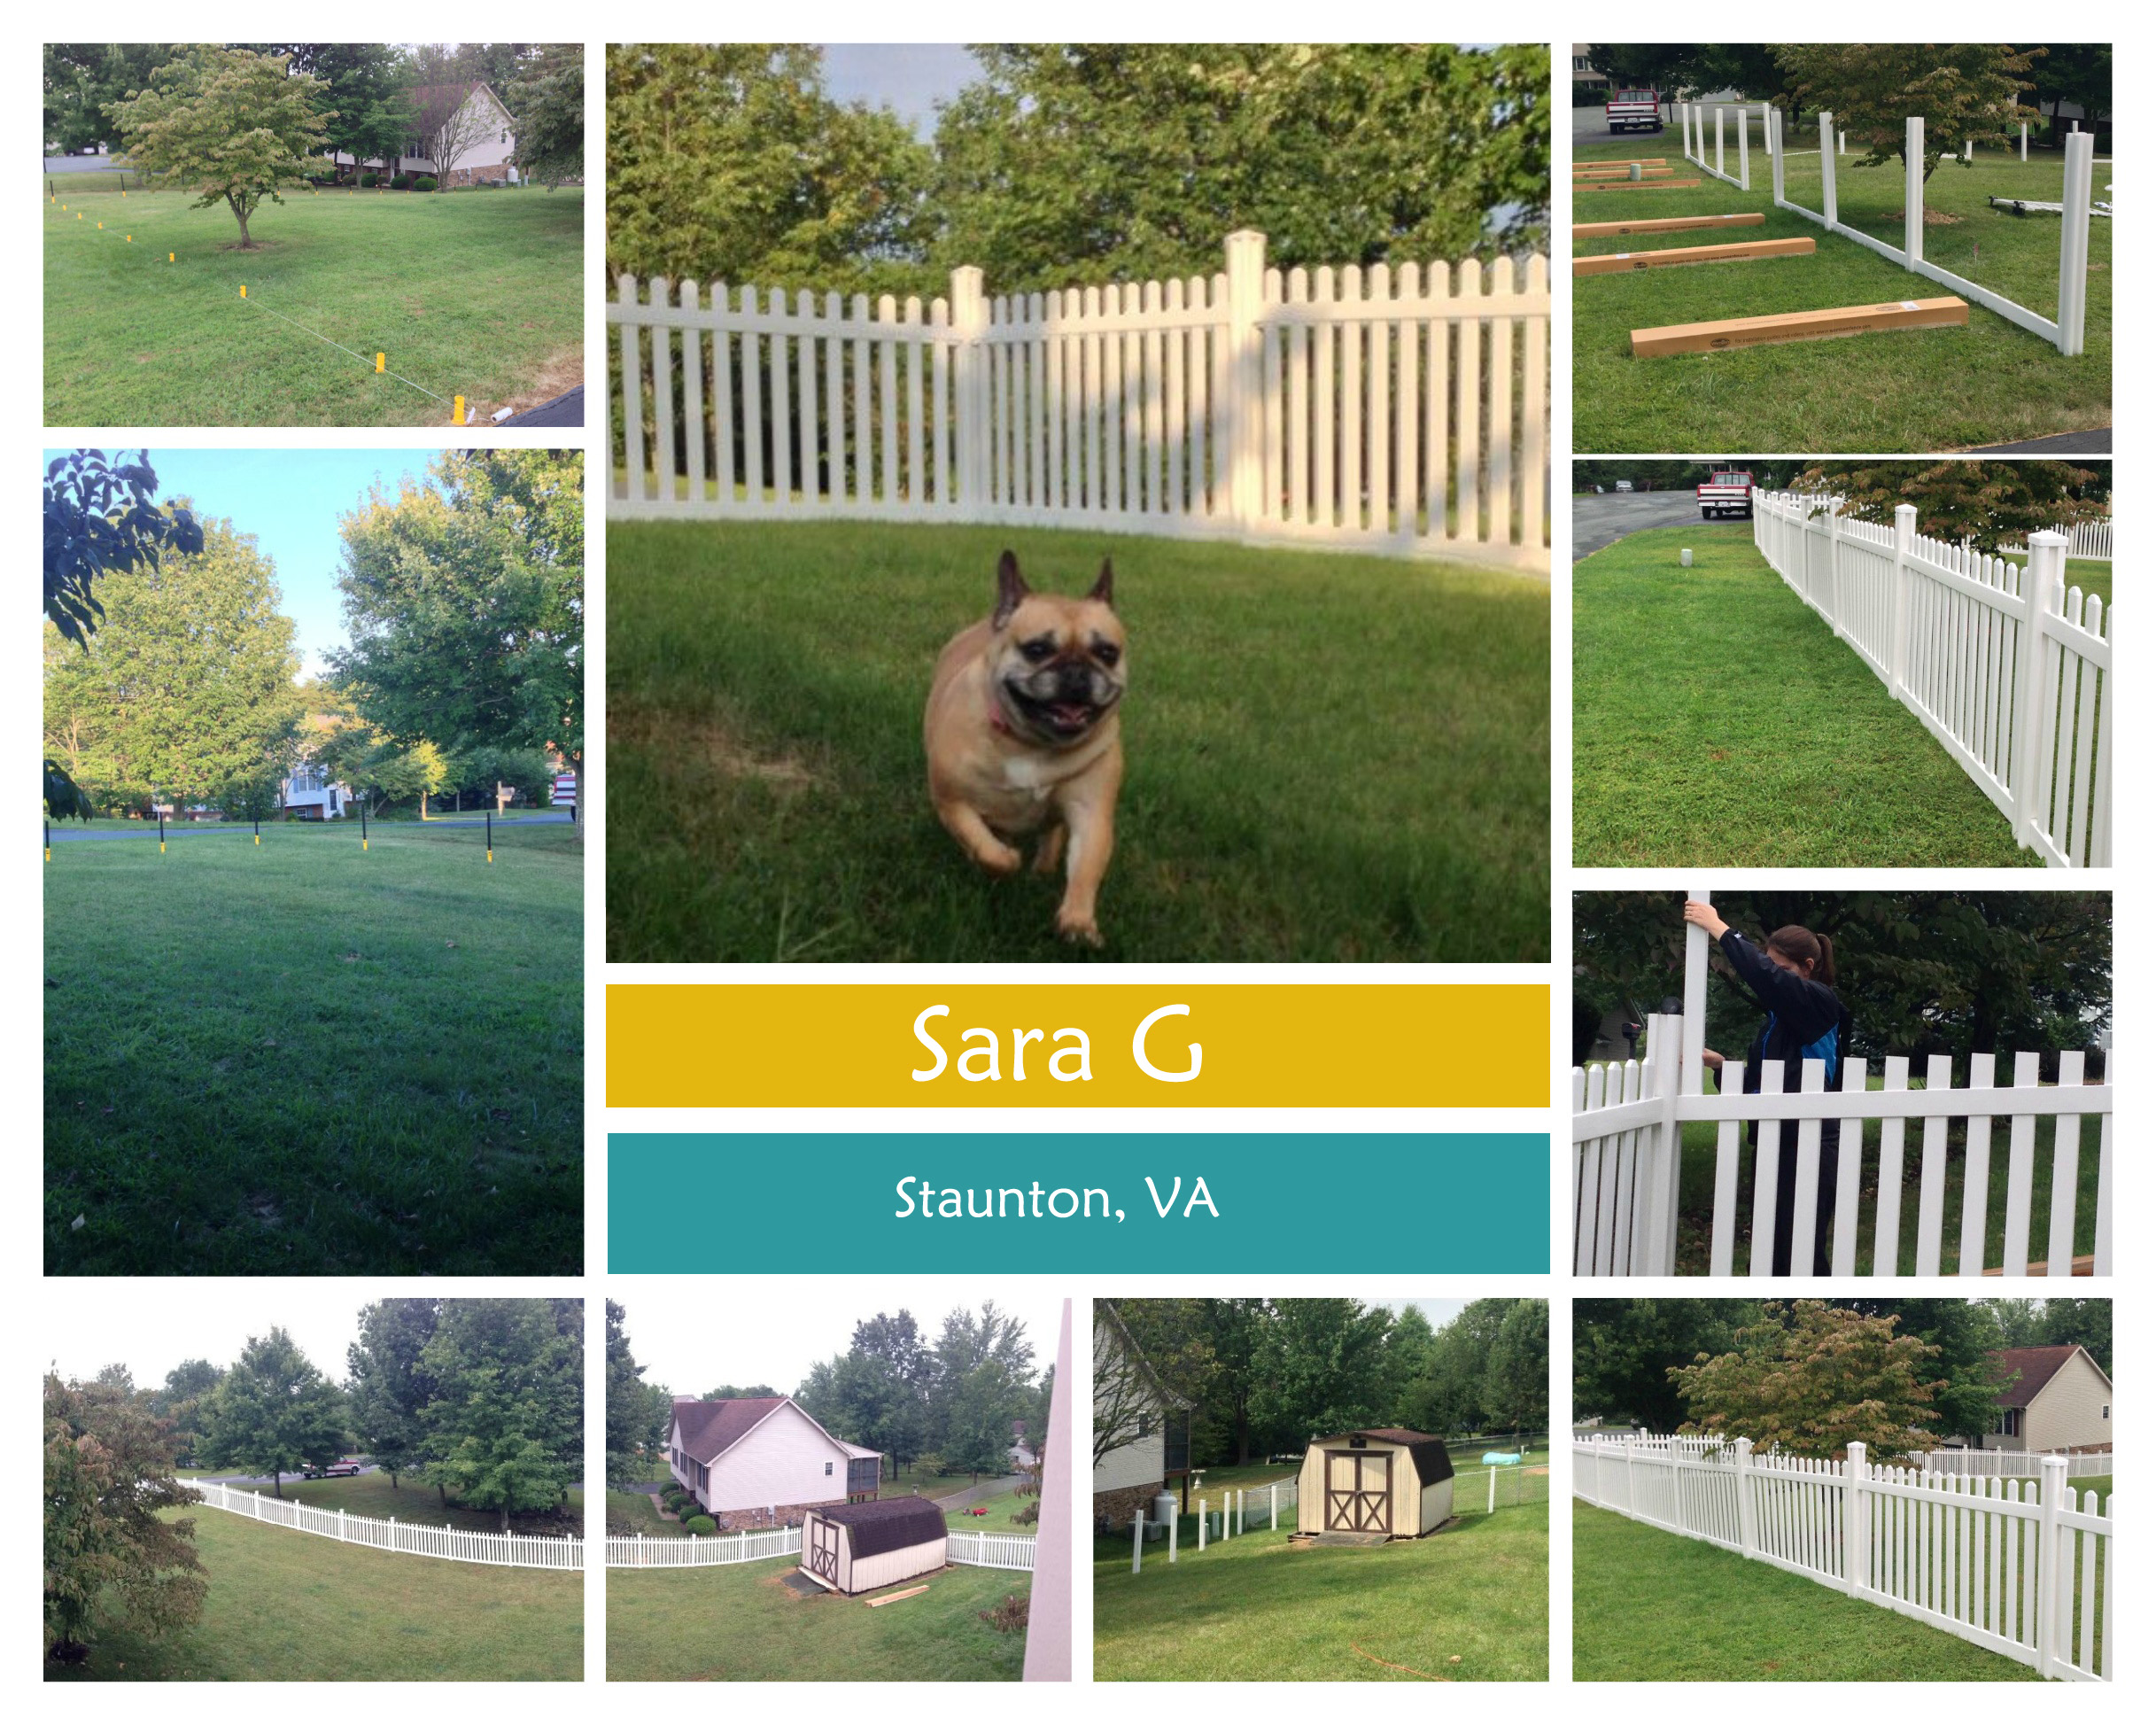 Sara G in Staunton VA takes home $100 third prize with 59 votes for her Jiminy Picket Vinyl Fence.